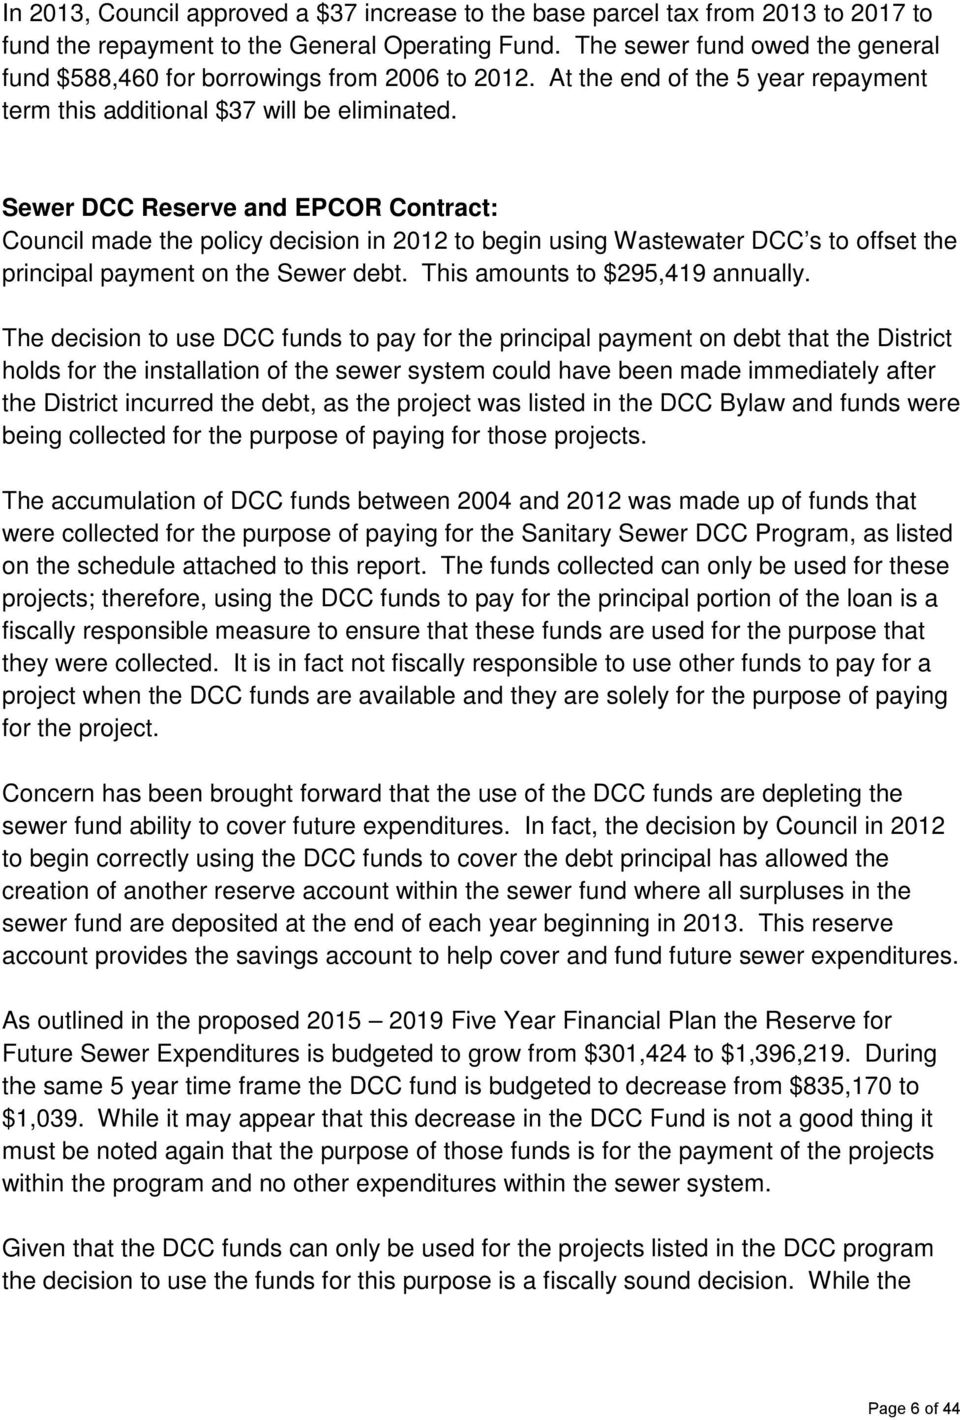 Sewer DCC Reserve and EPCOR Contract: Council made the policy decision in 2012 to begin using Wastewater DCC s to offset the principal payment on the Sewer debt. This amounts to $295,419 annually.